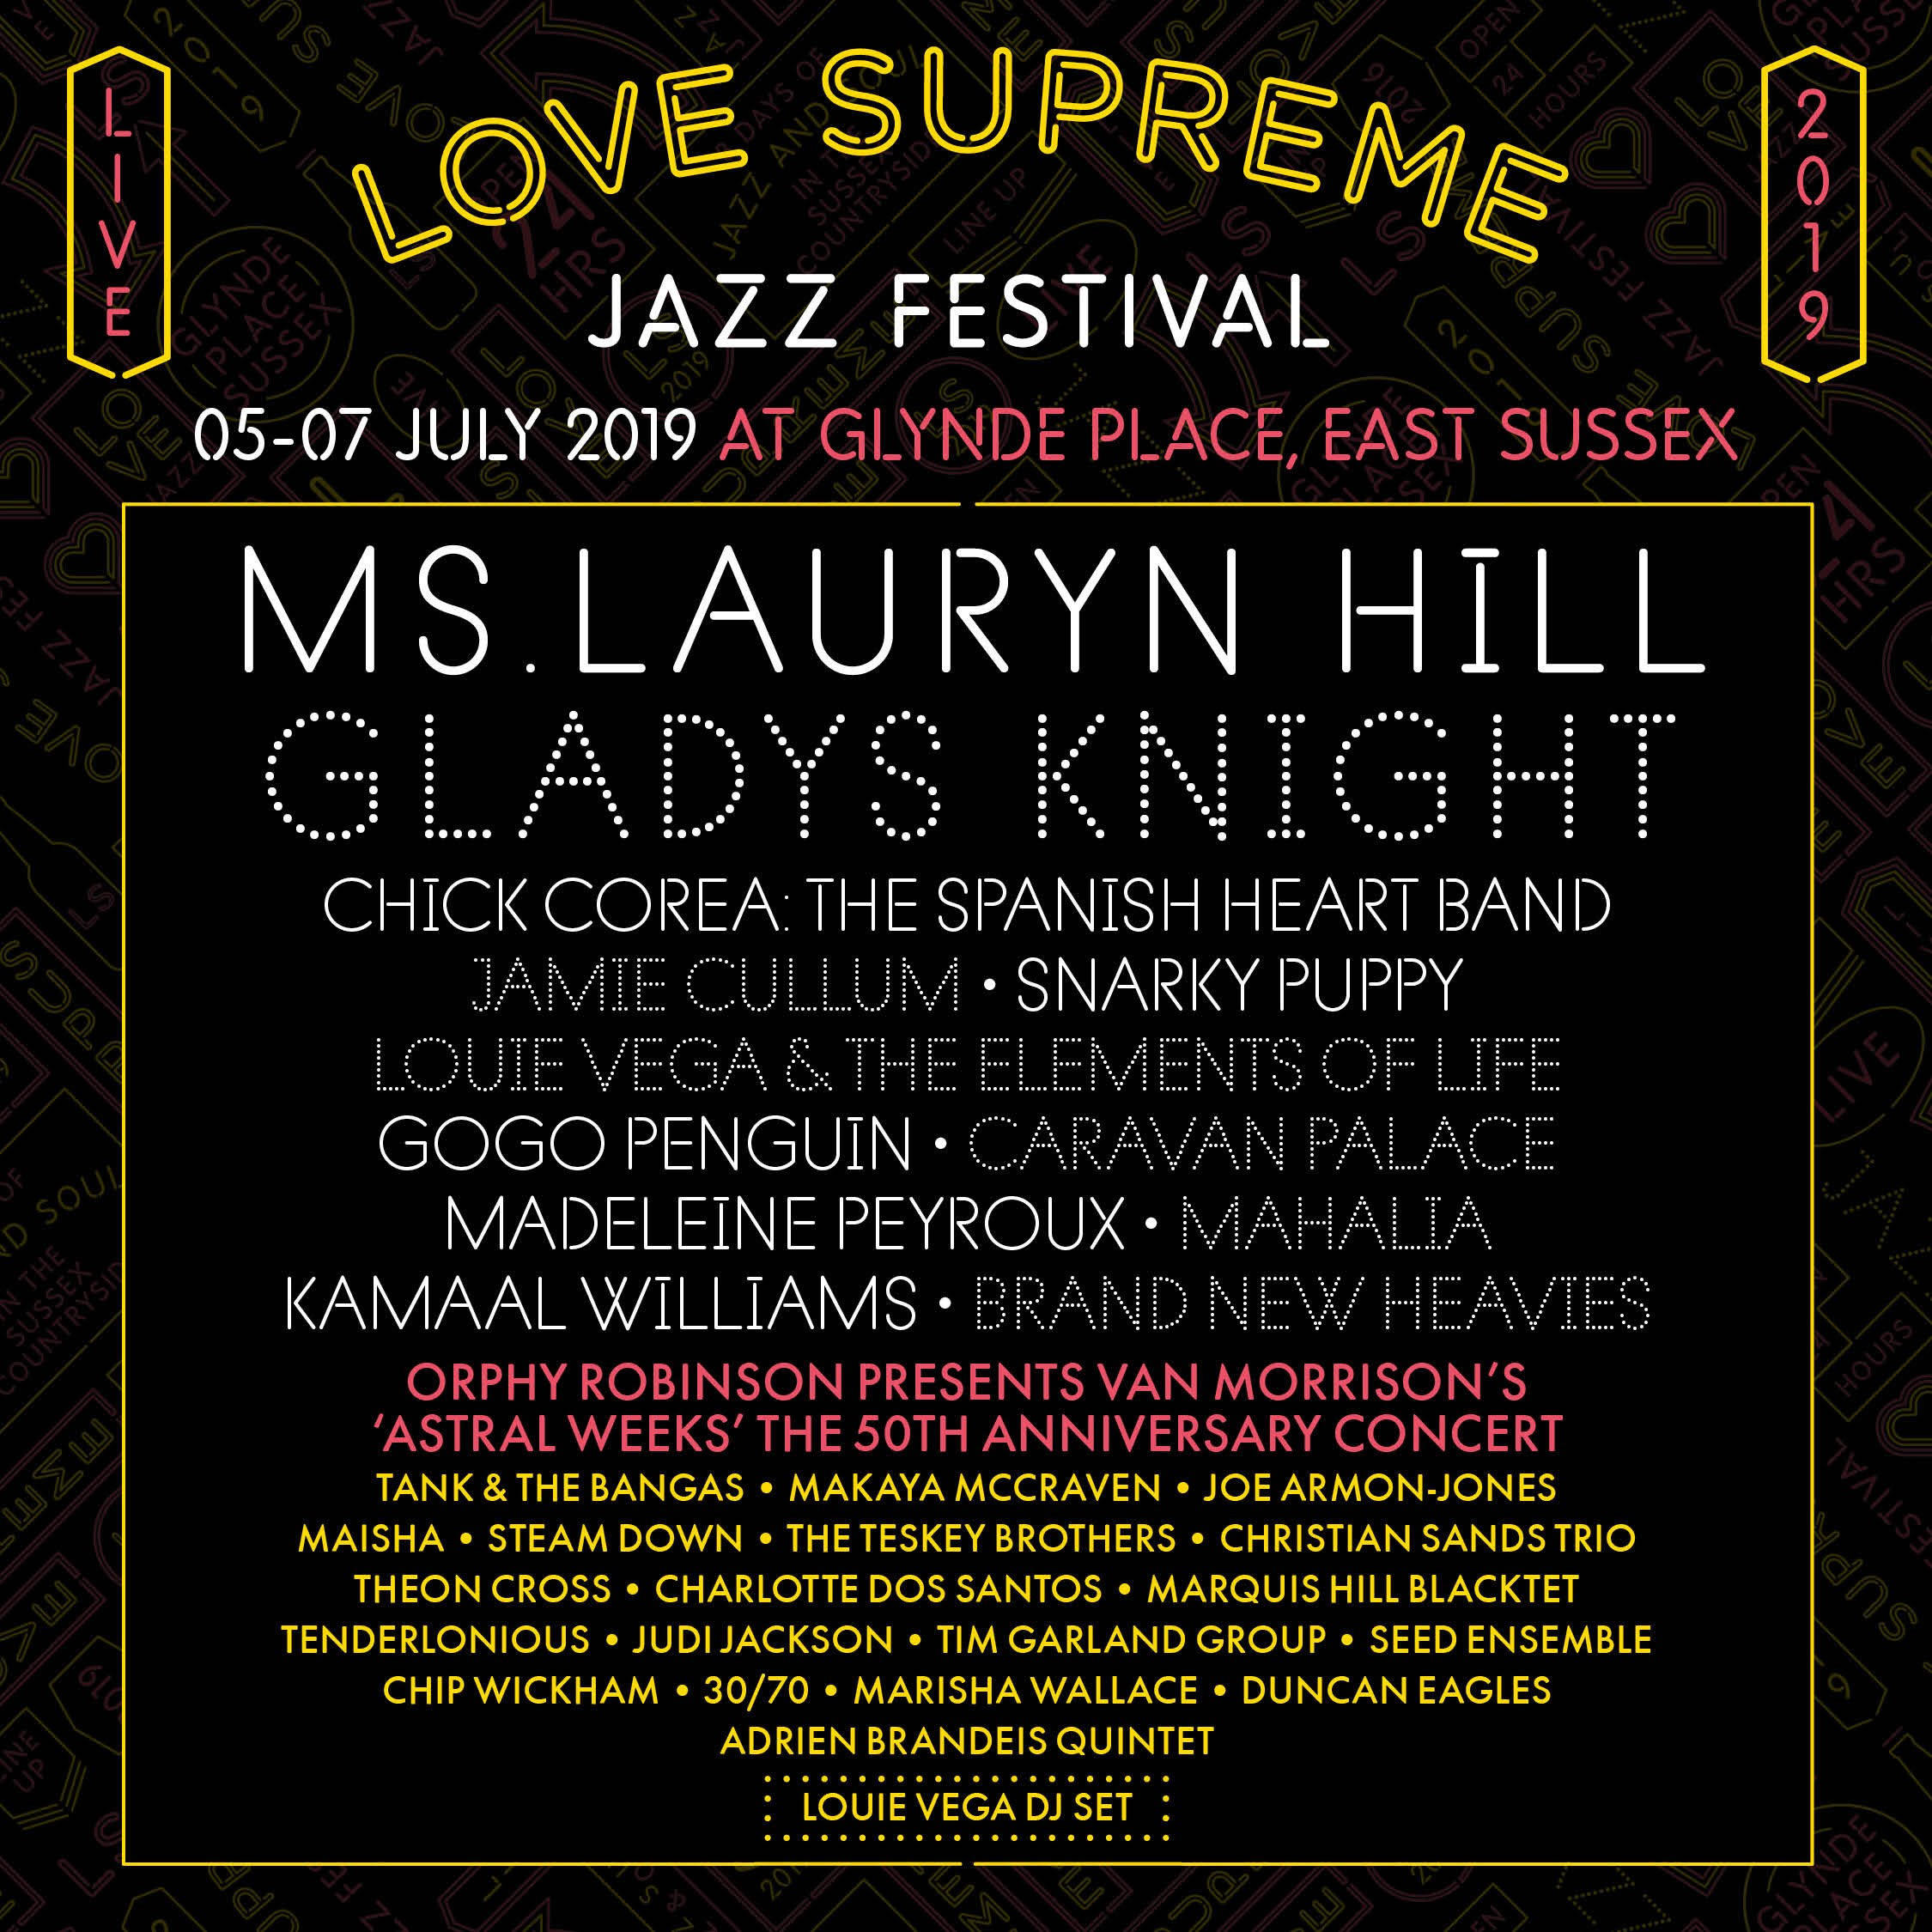 JULY 6, 2019 LOVE SUPREME FESTIVAL EOL (IG)